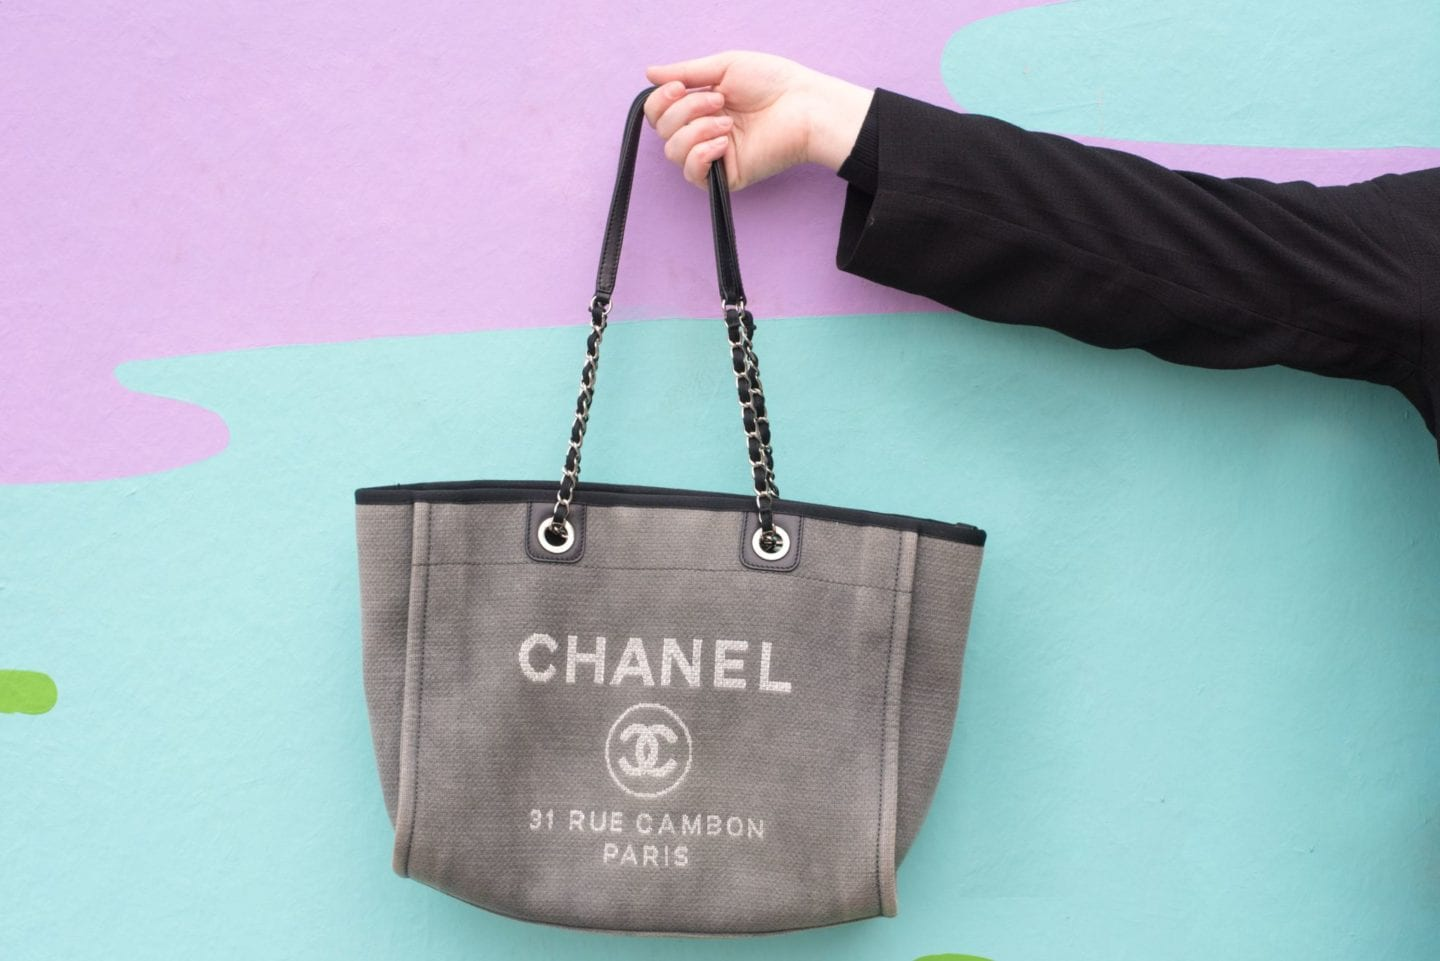 The Vintage Chanel Deauville Bag V's The Modern Deauville Tote Handbag